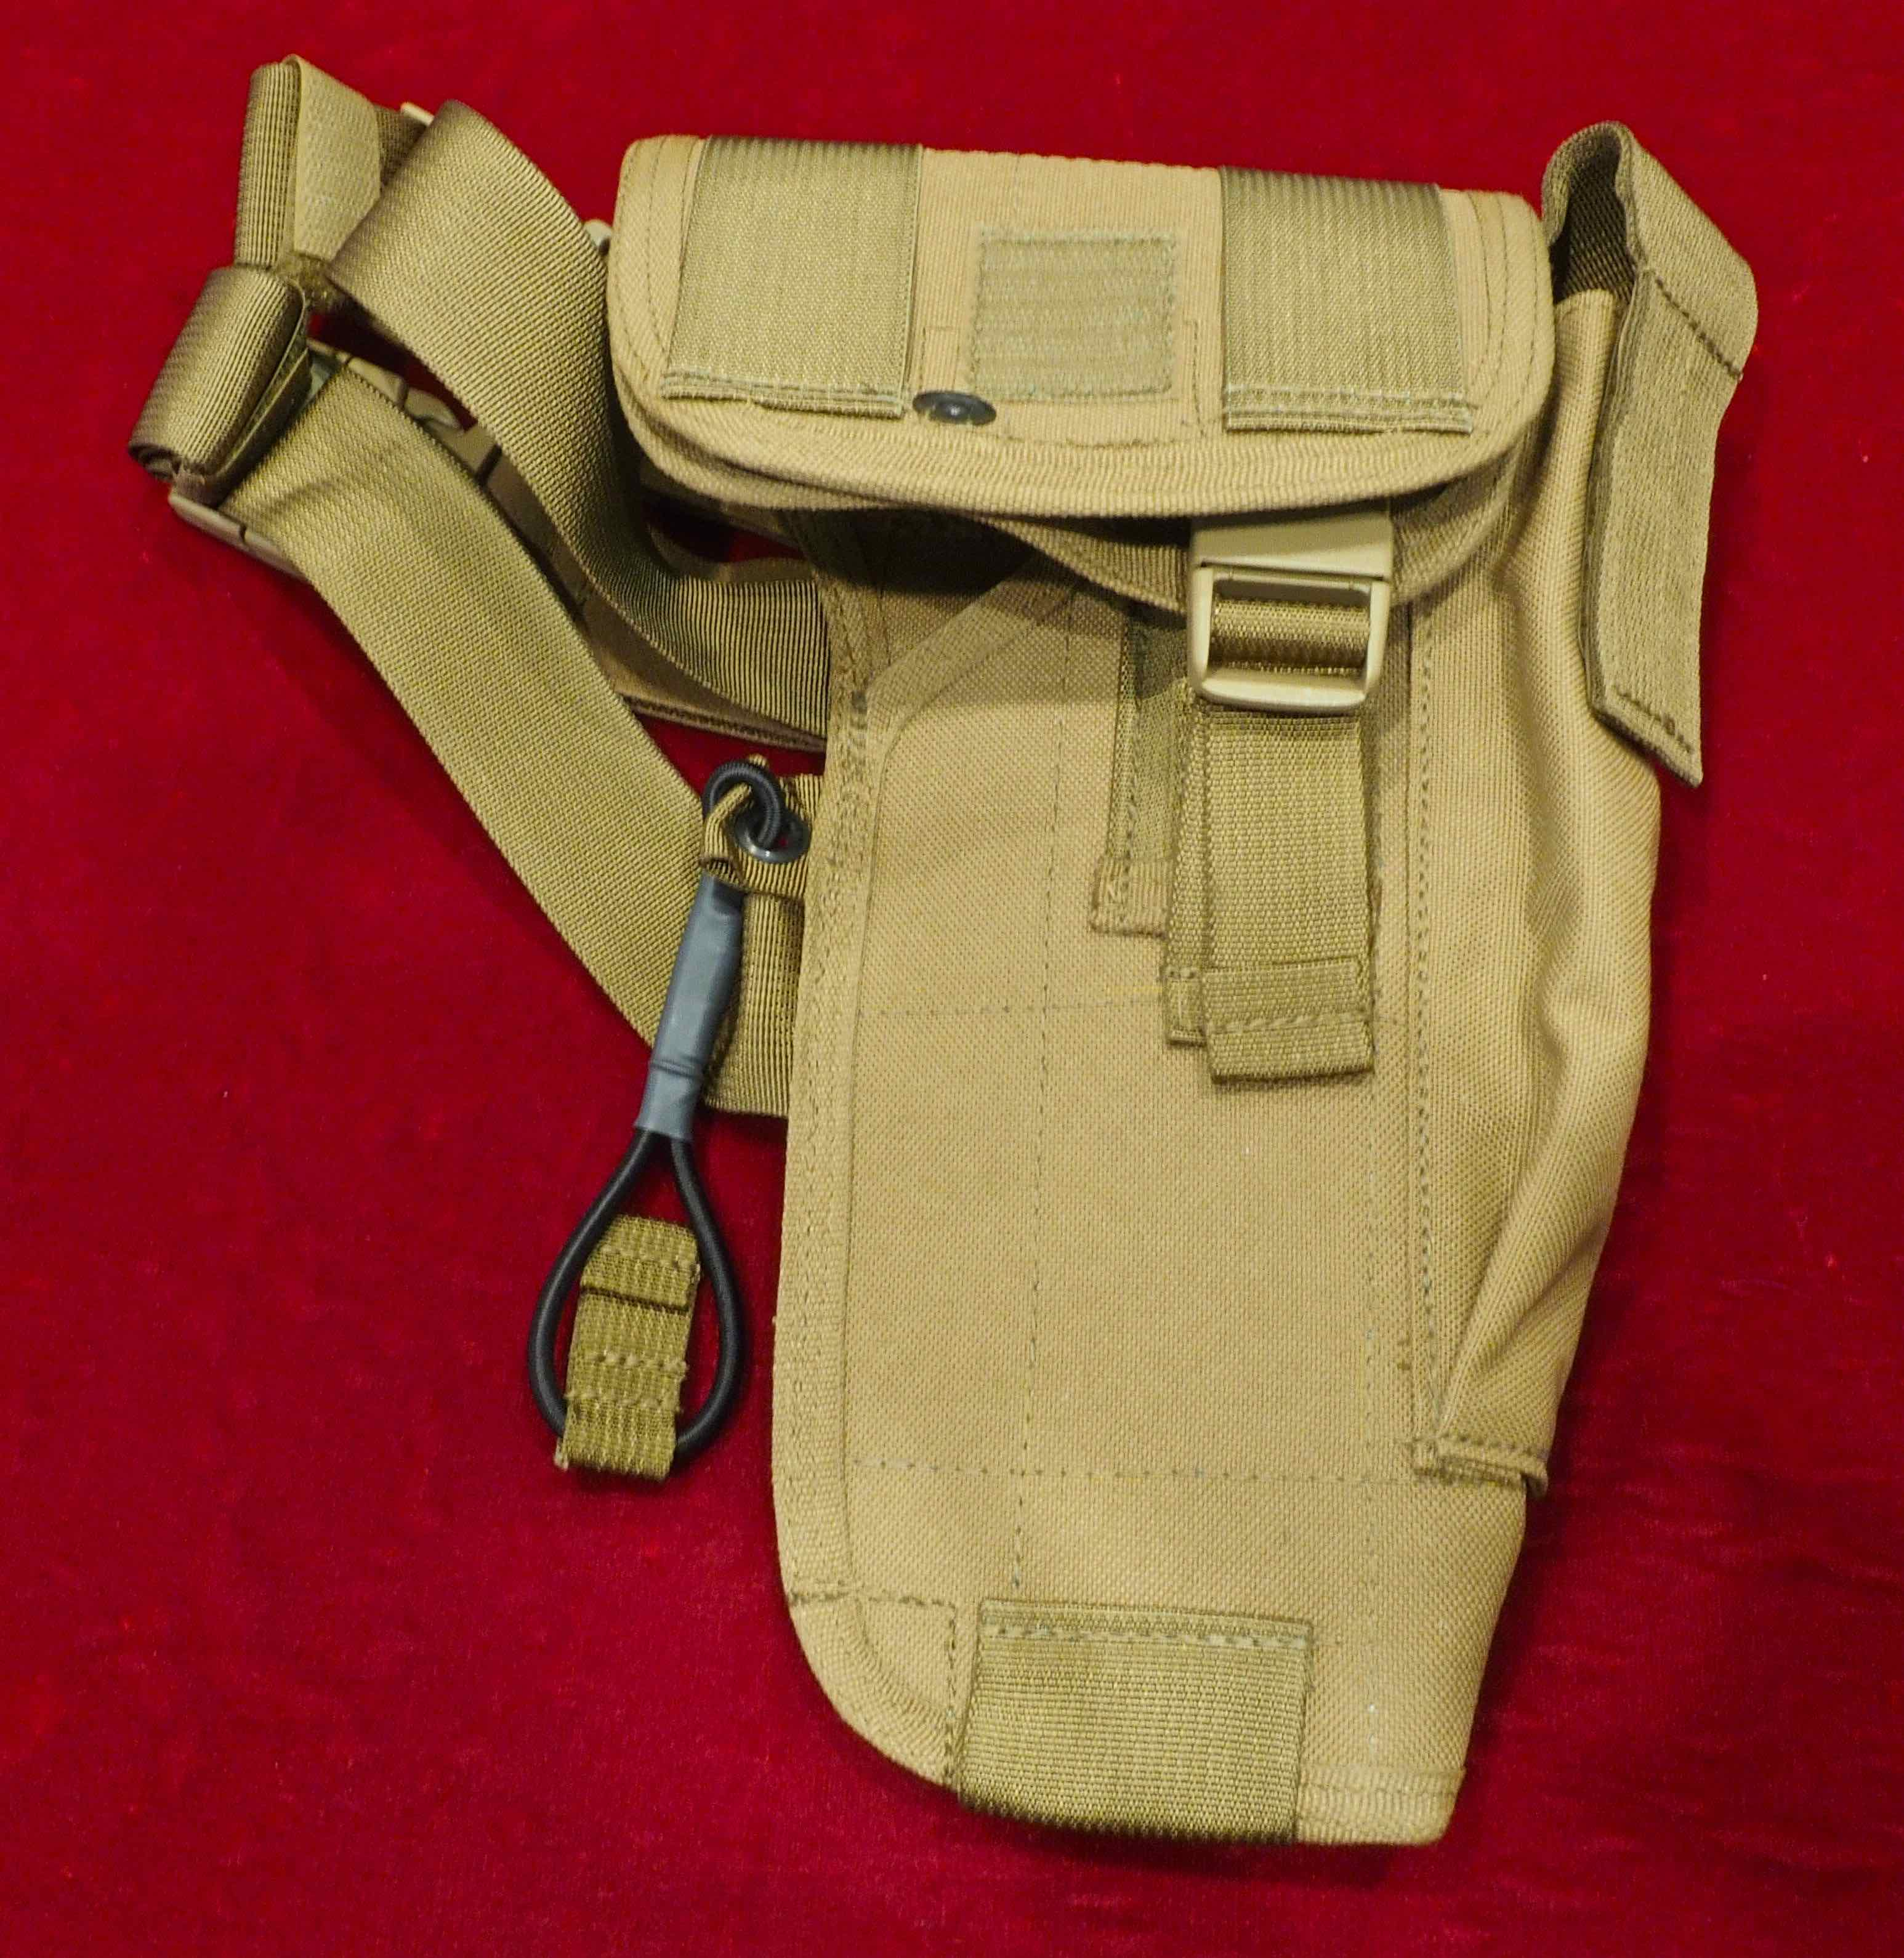 WTS:  LBT-1794B RH Holster for MARK 23 Pistol and Suppressor in Coyote Tan-p1011225.jpg